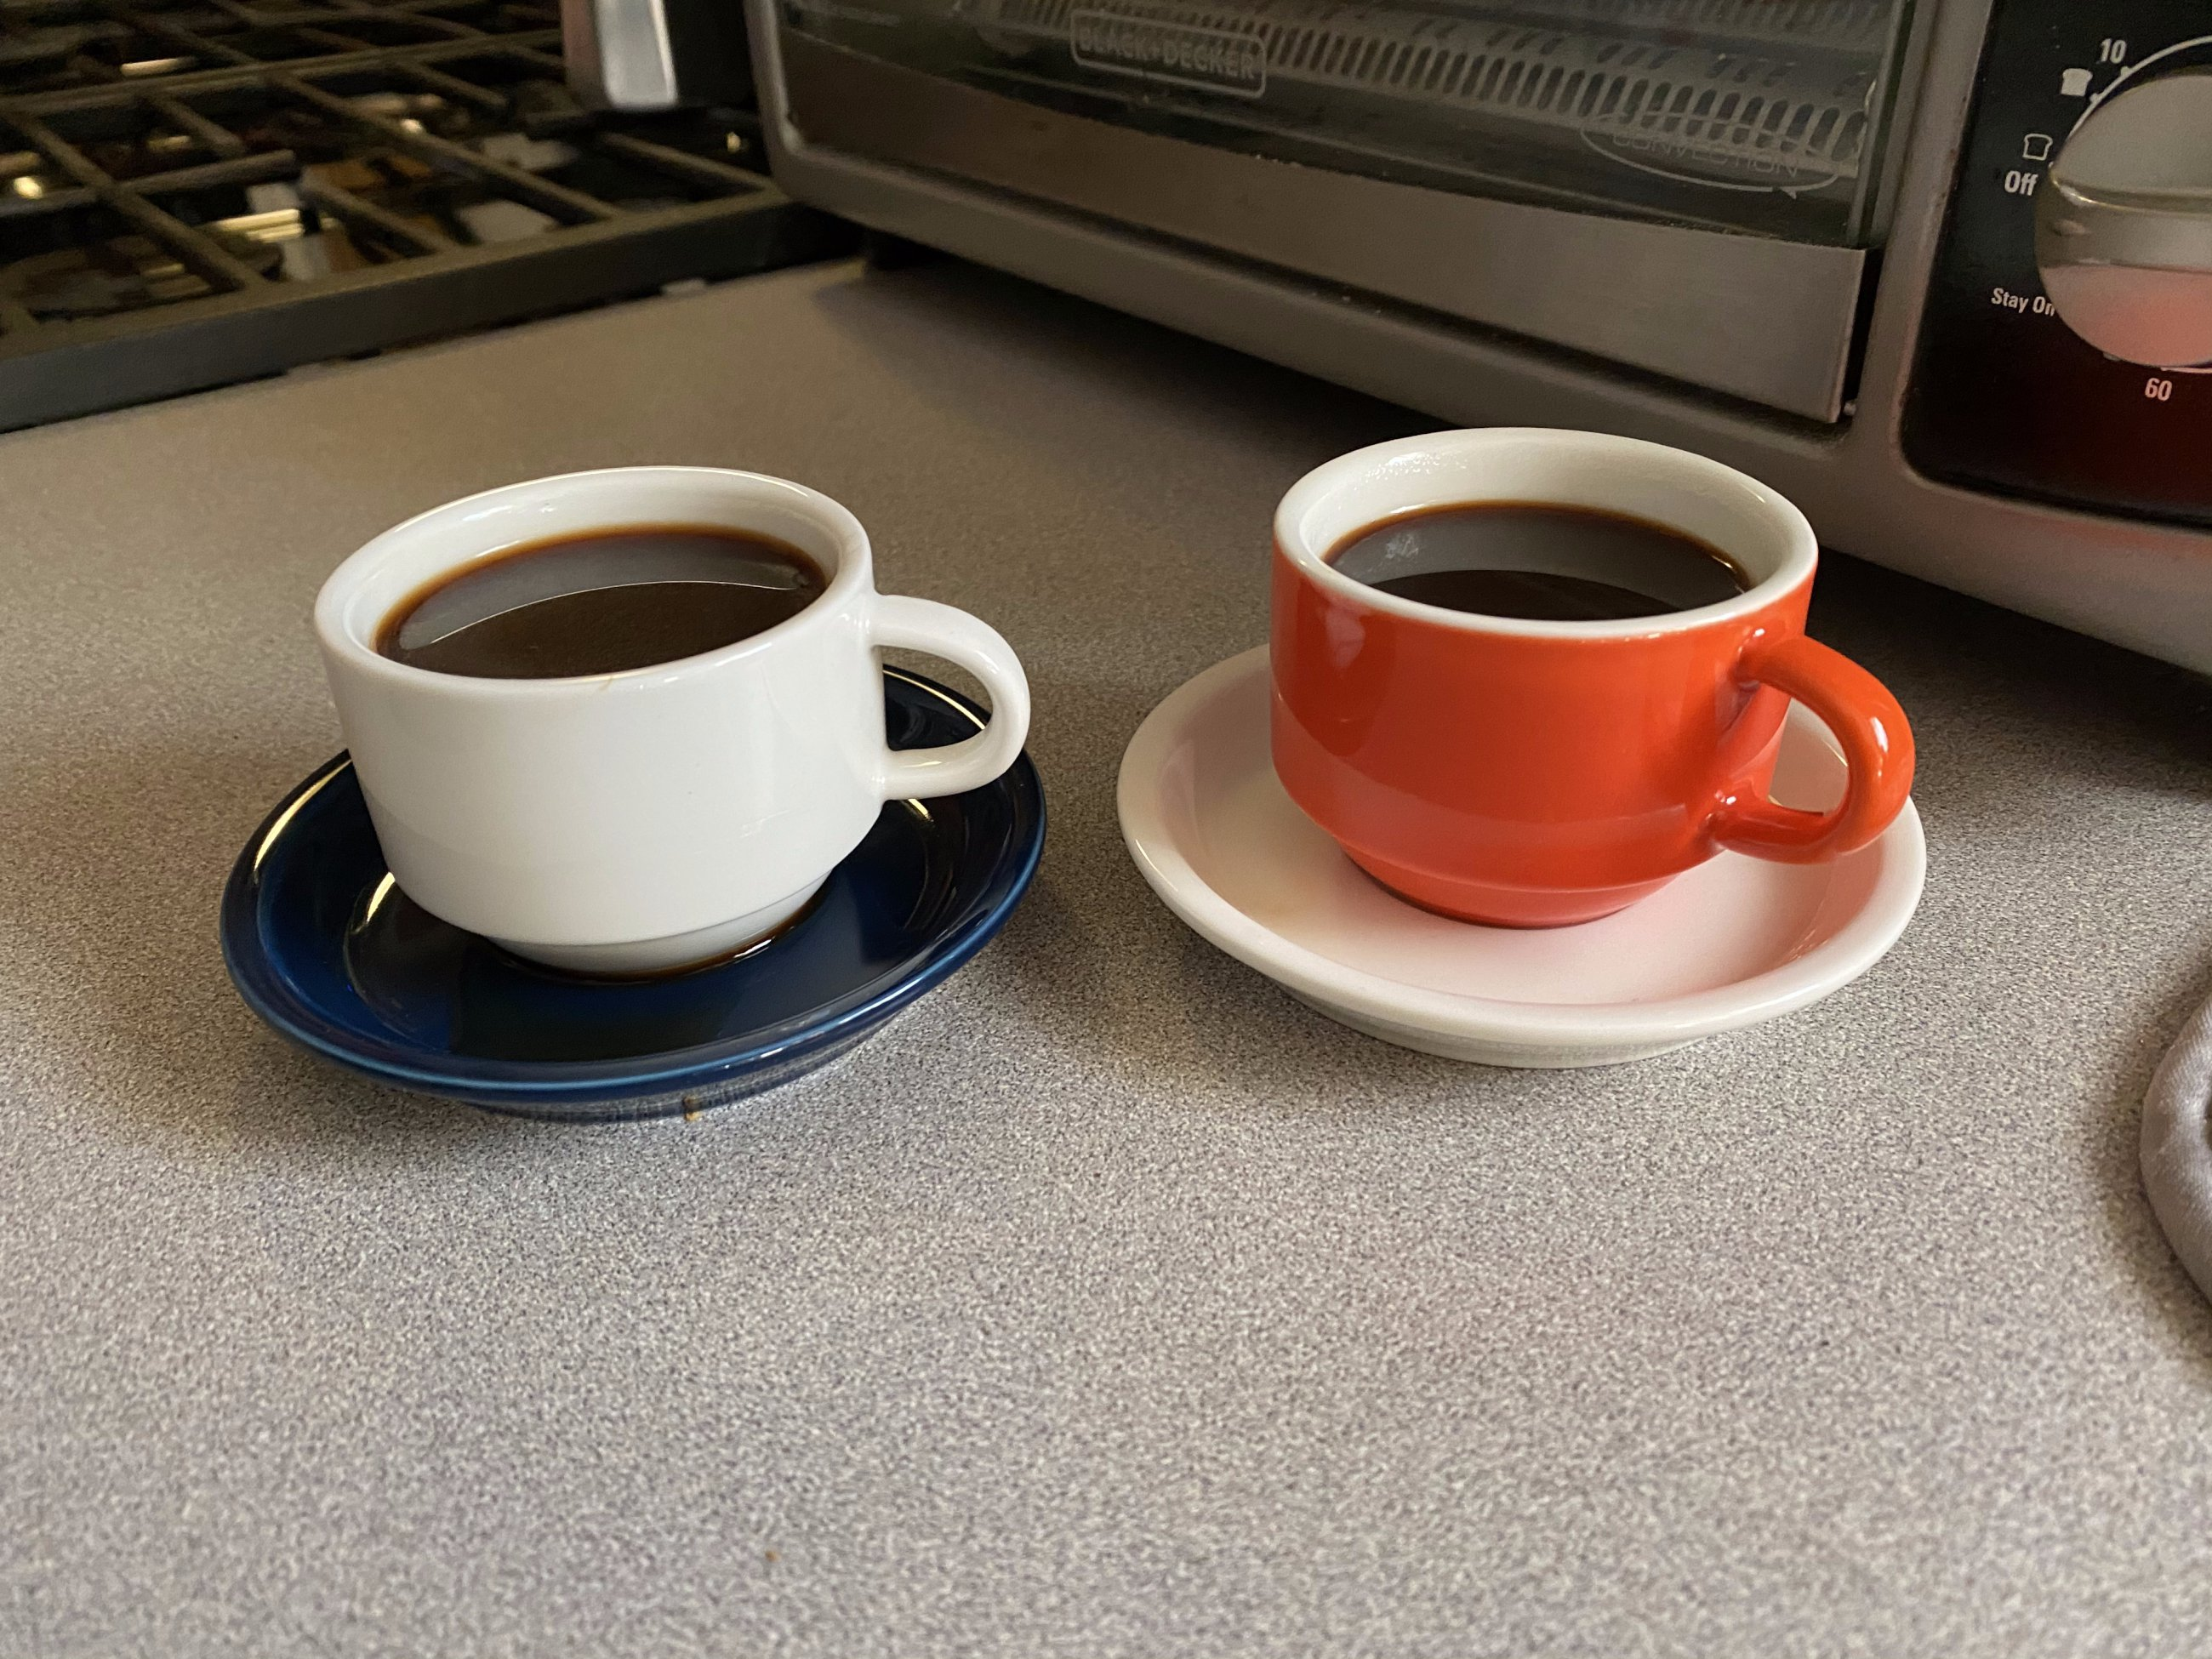 Small espresso cups on saucers